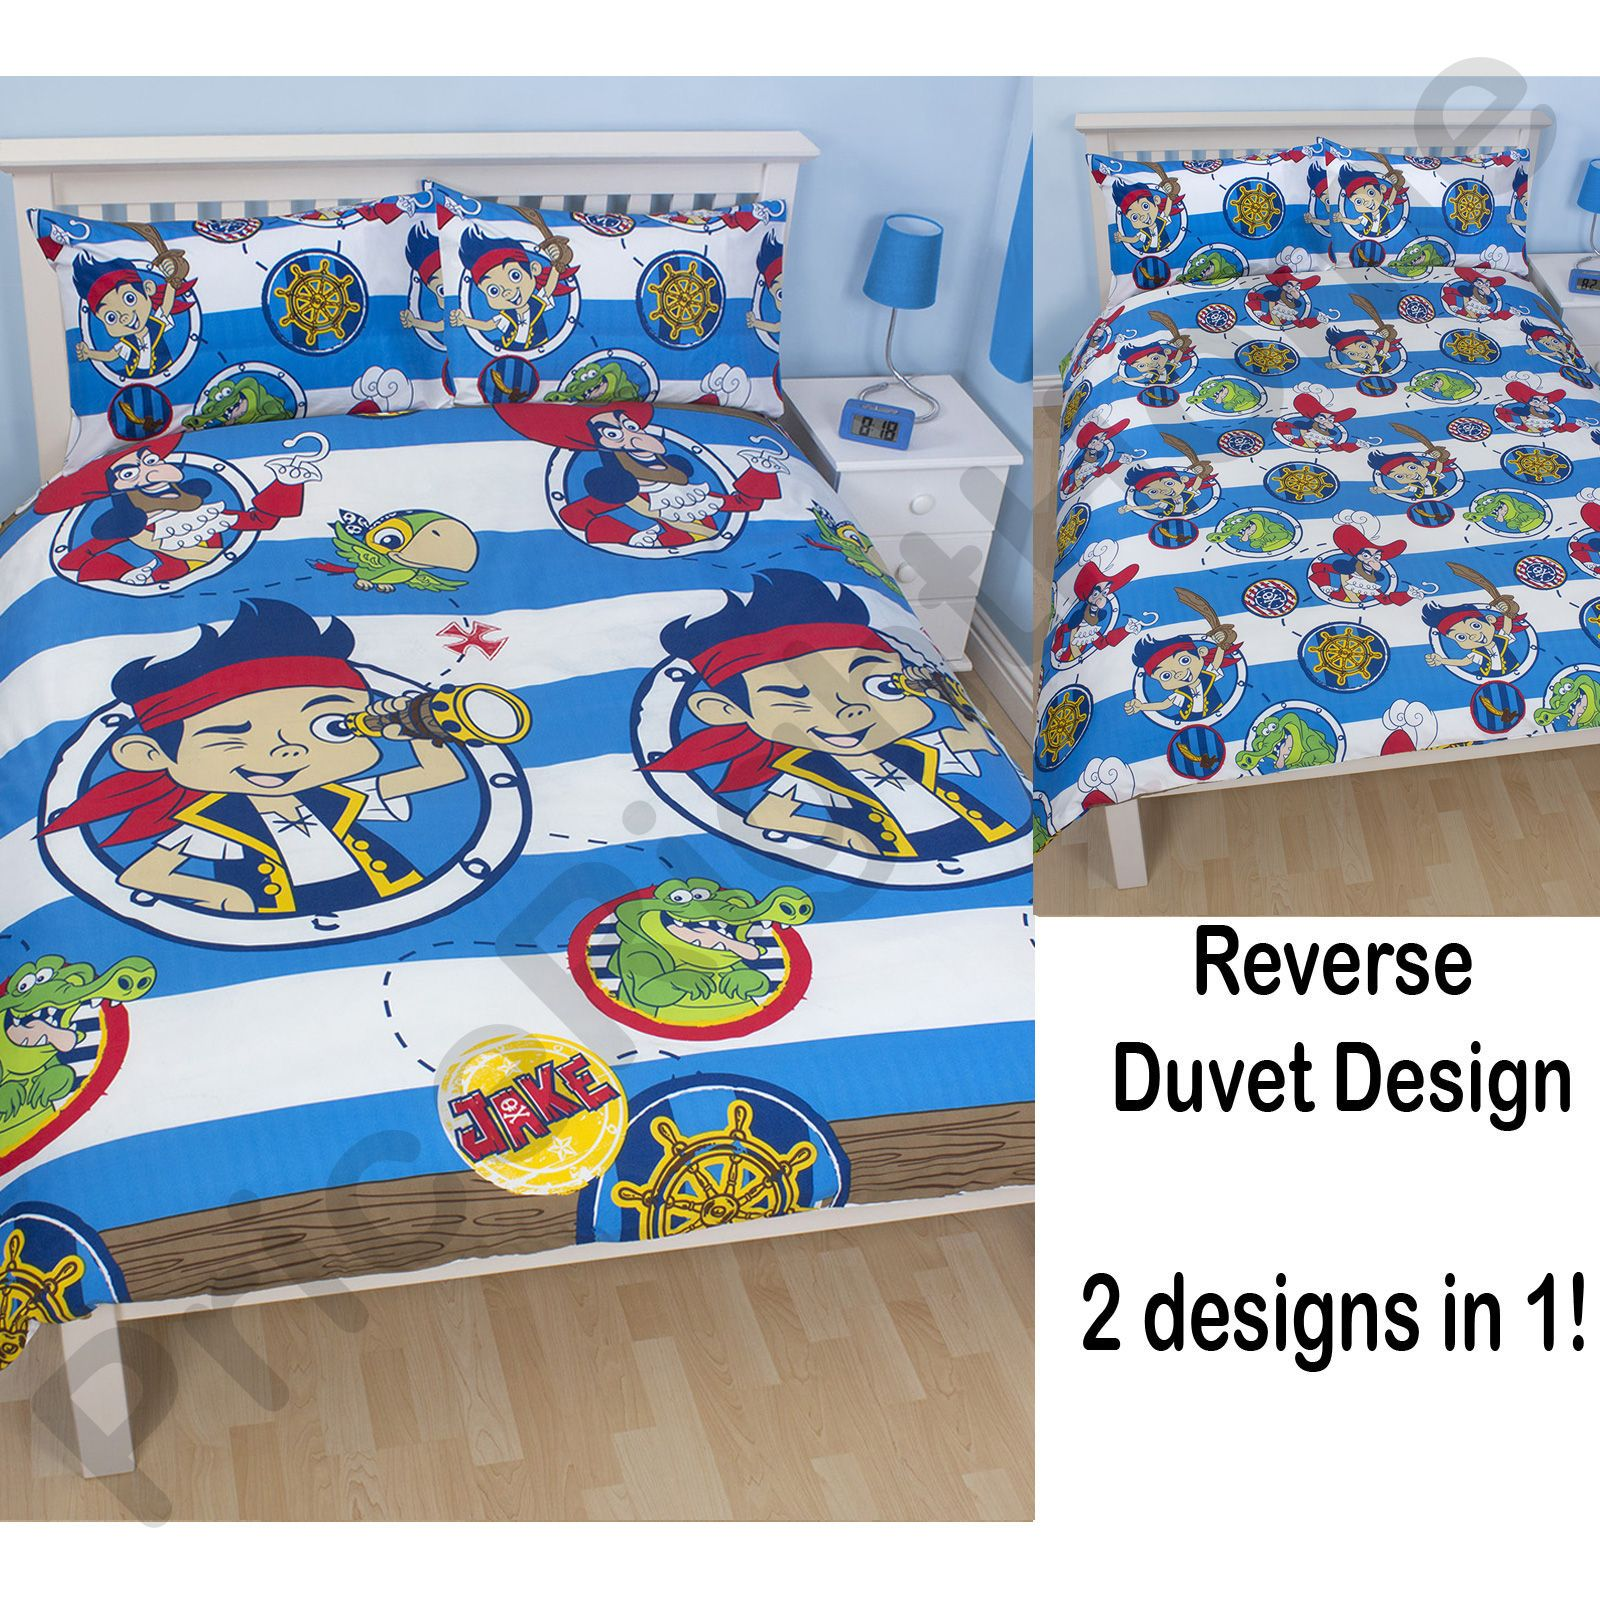 JAKE Amp THE NEVERLAND PIRATES BEDROOM DUVET COVERS